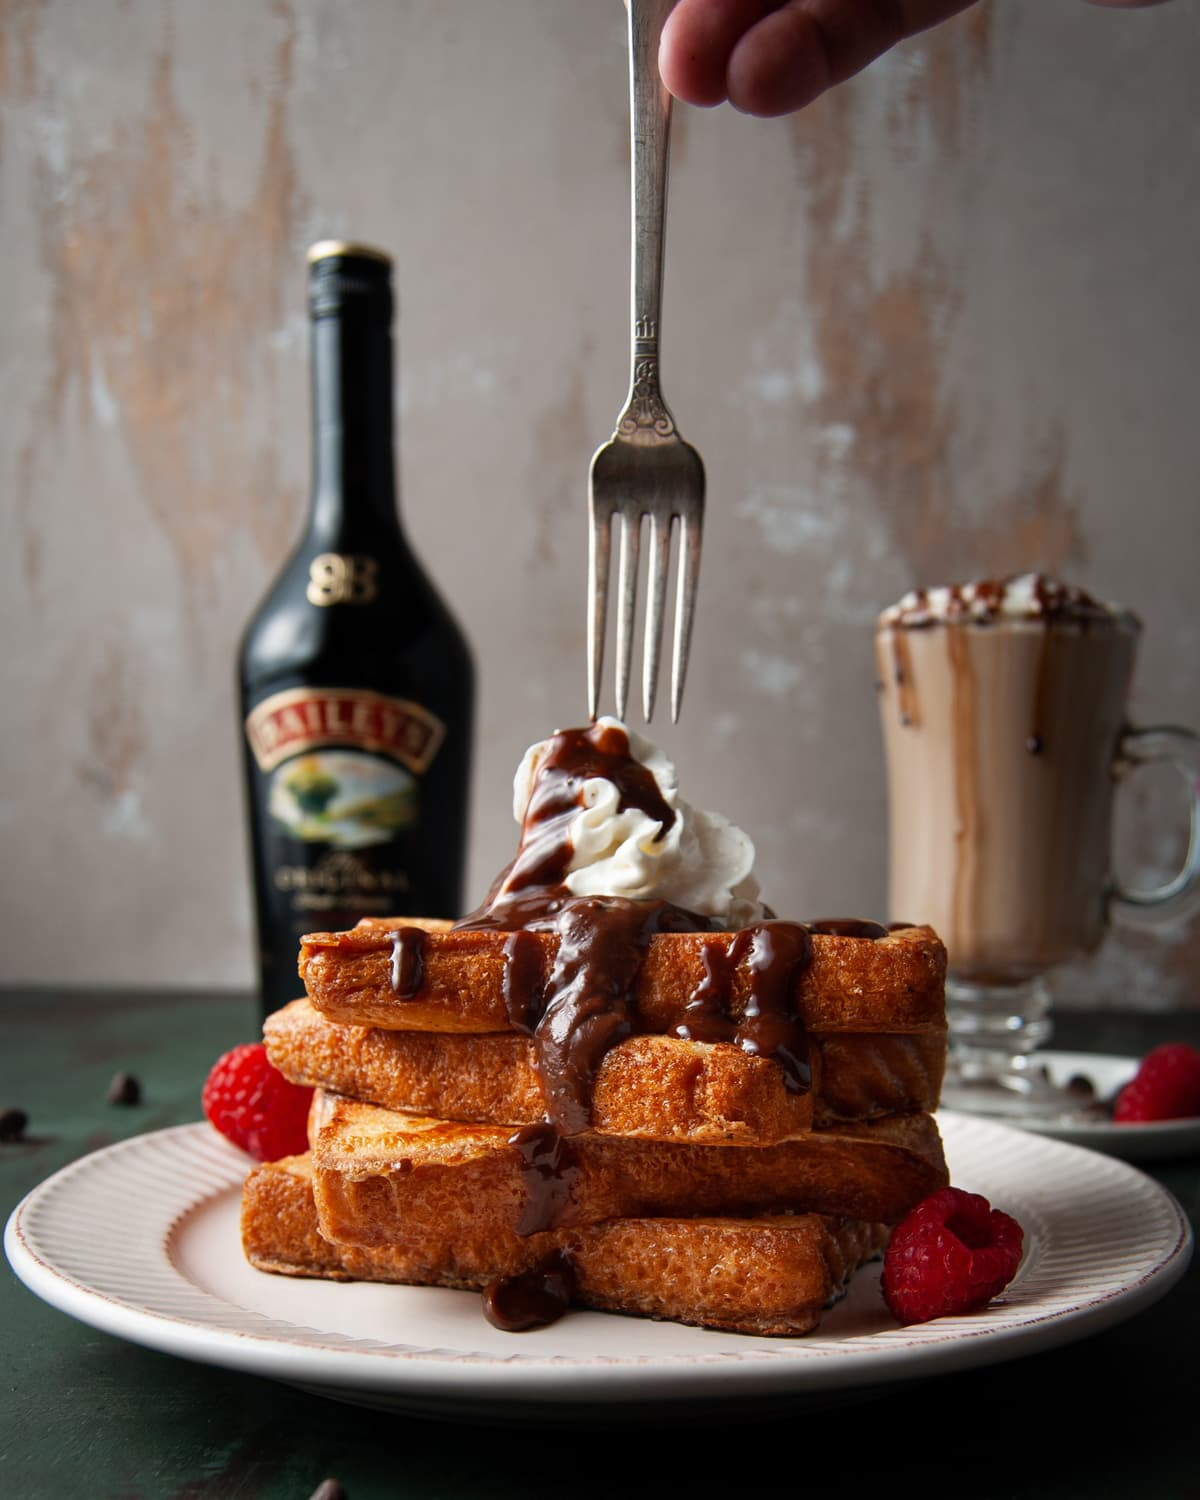 taking a fork to a stack of French Toast covered in chocolate